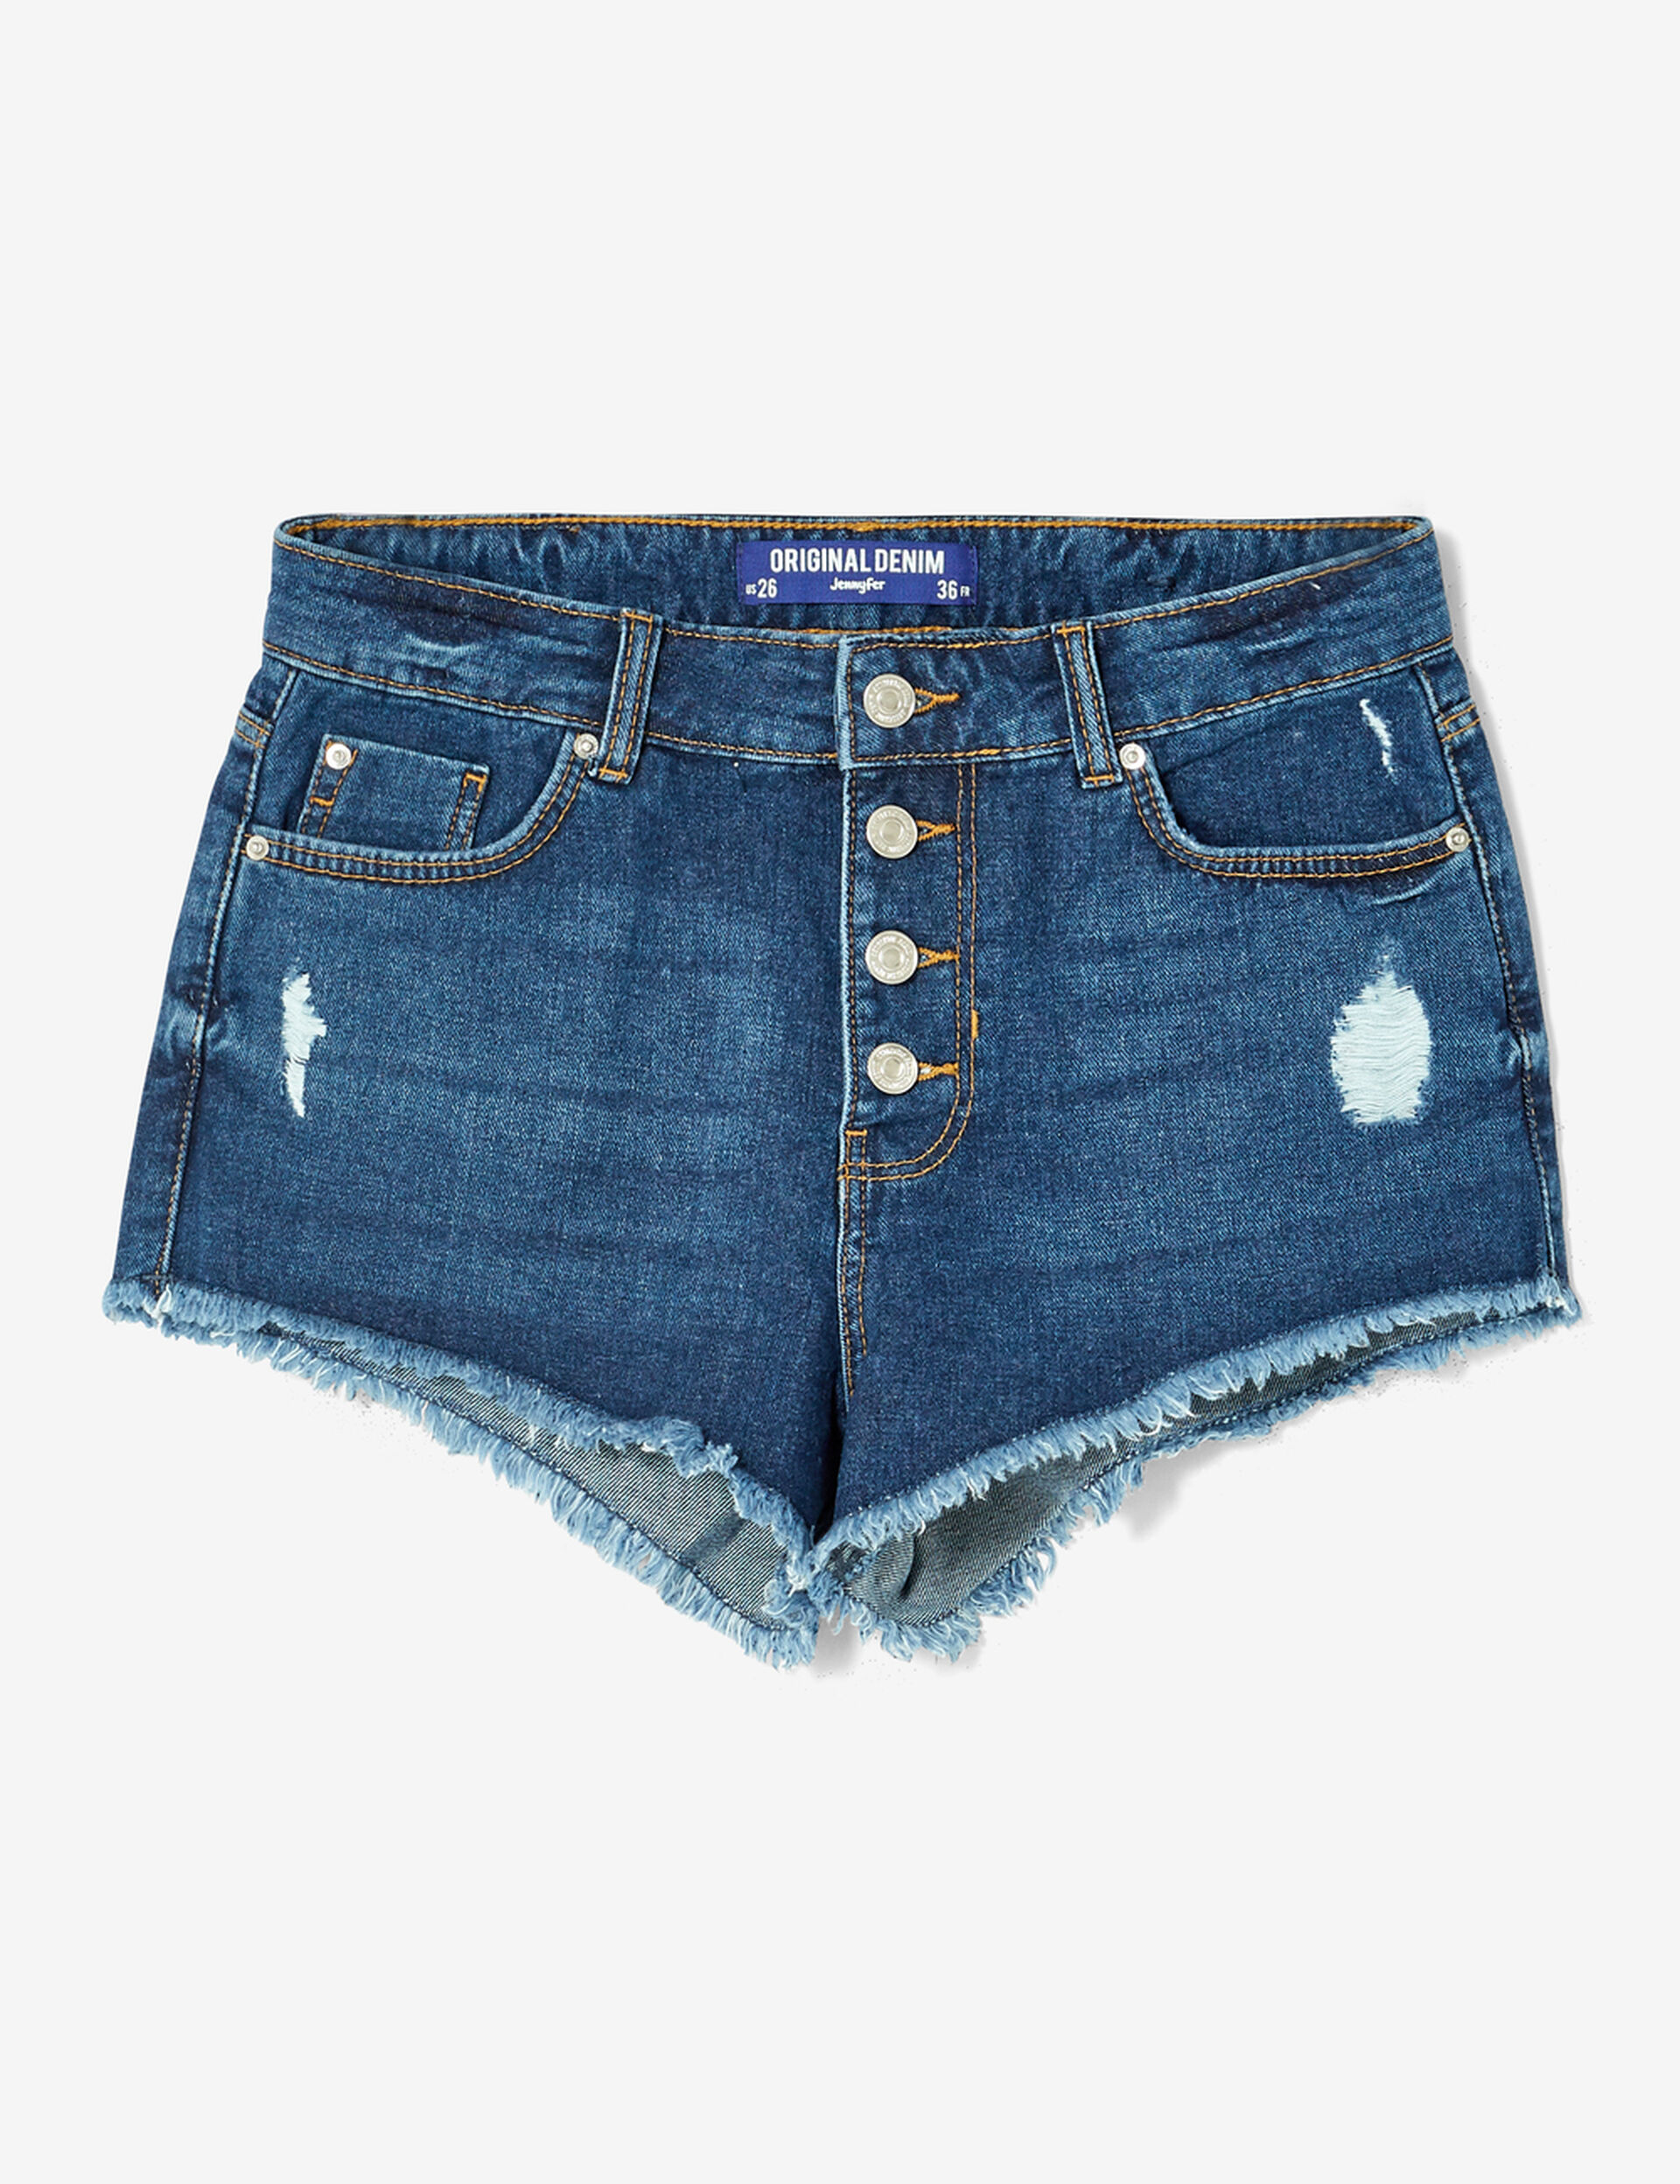 High-waisted medium blue denim shorts